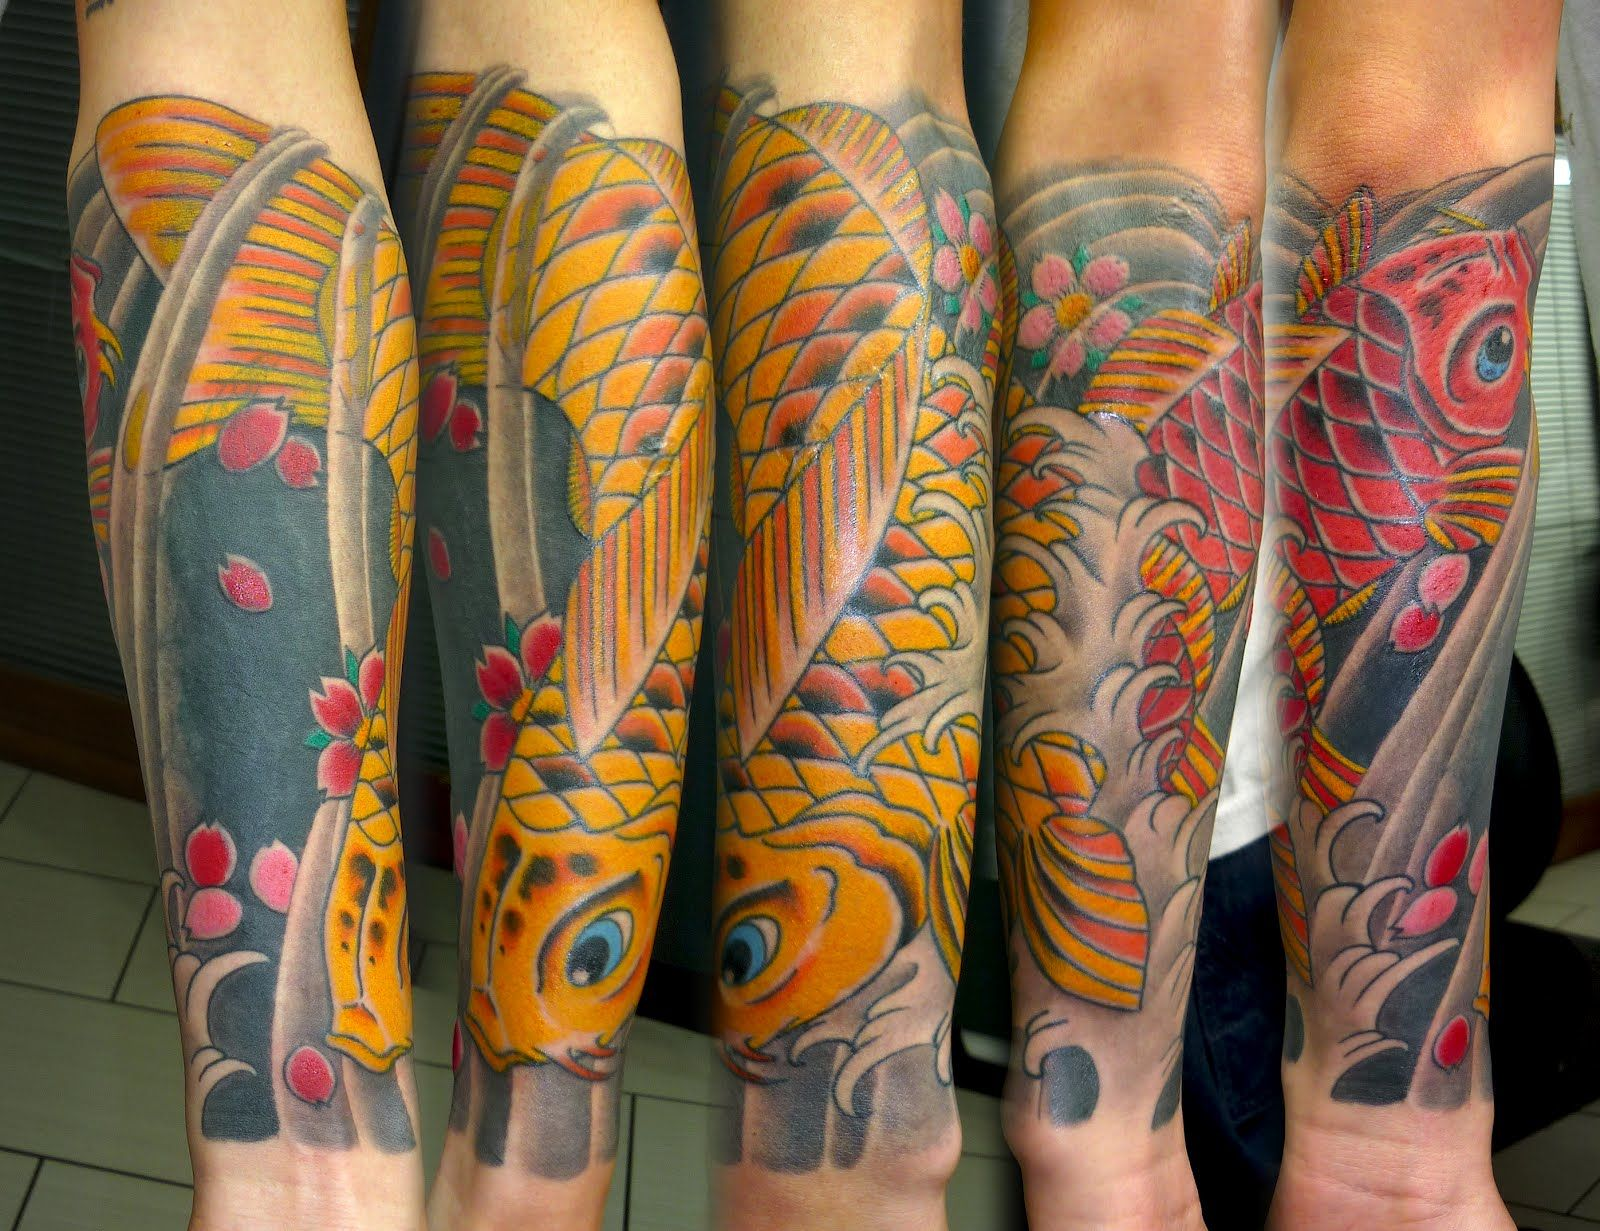 Koi Fish Forearm Tattoo Design Tattoobite Com Forearm Tattoos Tattoos For Guys Koi Fish Tattoo